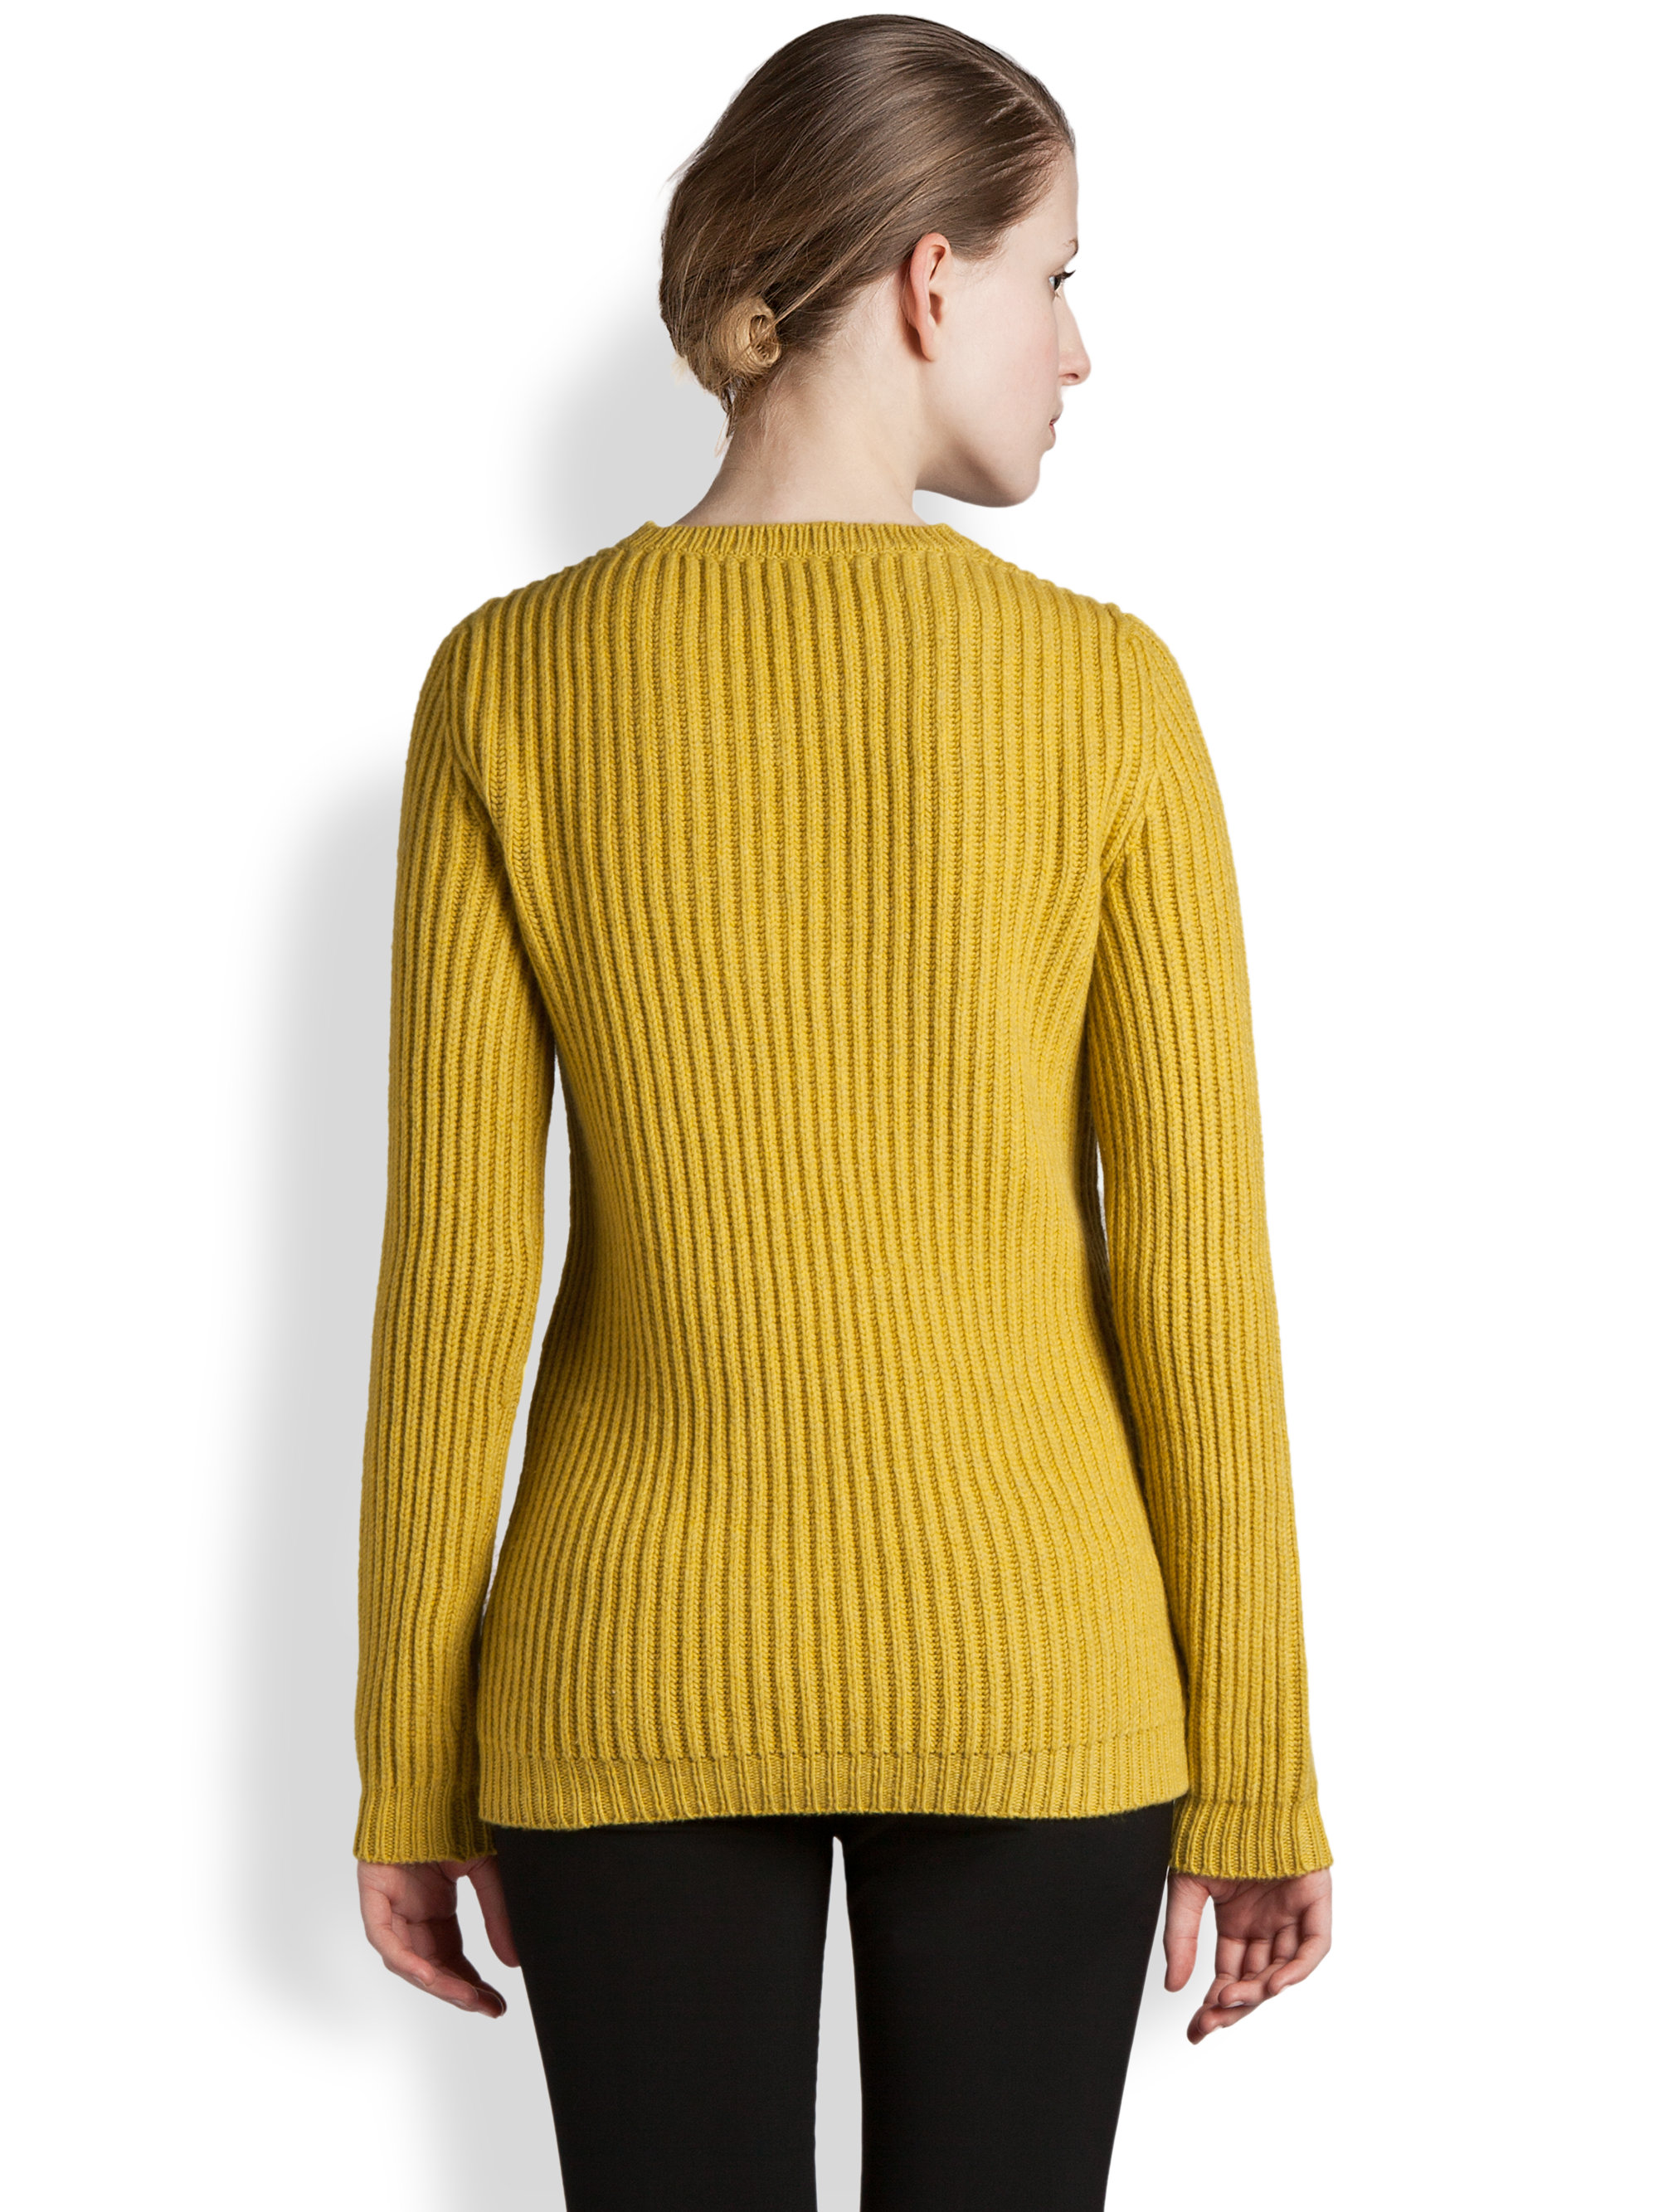 Jil sander Ribbed Wool Cashmere Sweater in Yellow | Lyst